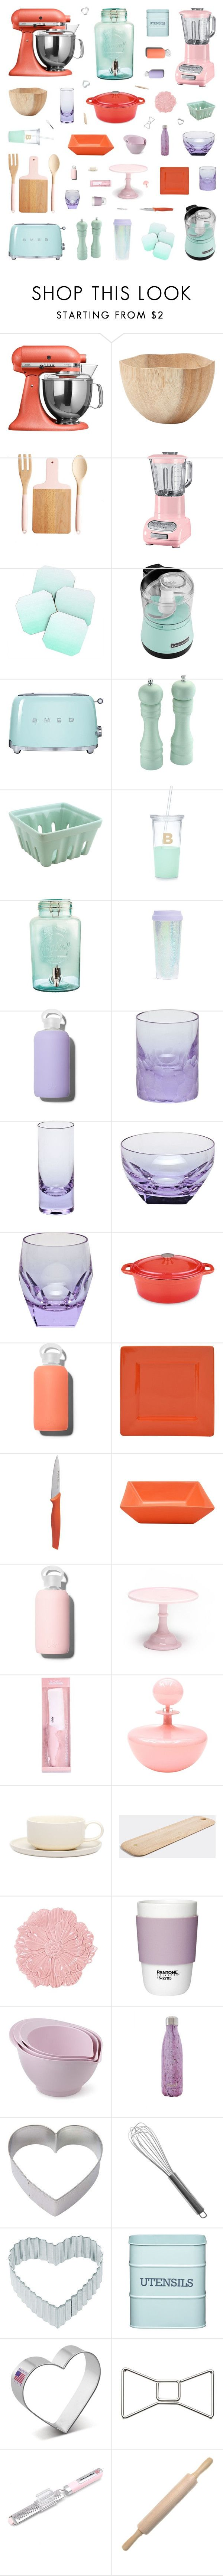 """""""Coral, Pink, Mint & Violet Kitchen Decor"""" by belenloperfido on Polyvore featuring interior, interiors, interior design, home, home decor, interior decorating, KitchenAid, DENY Designs, Smeg and Kate Spade"""